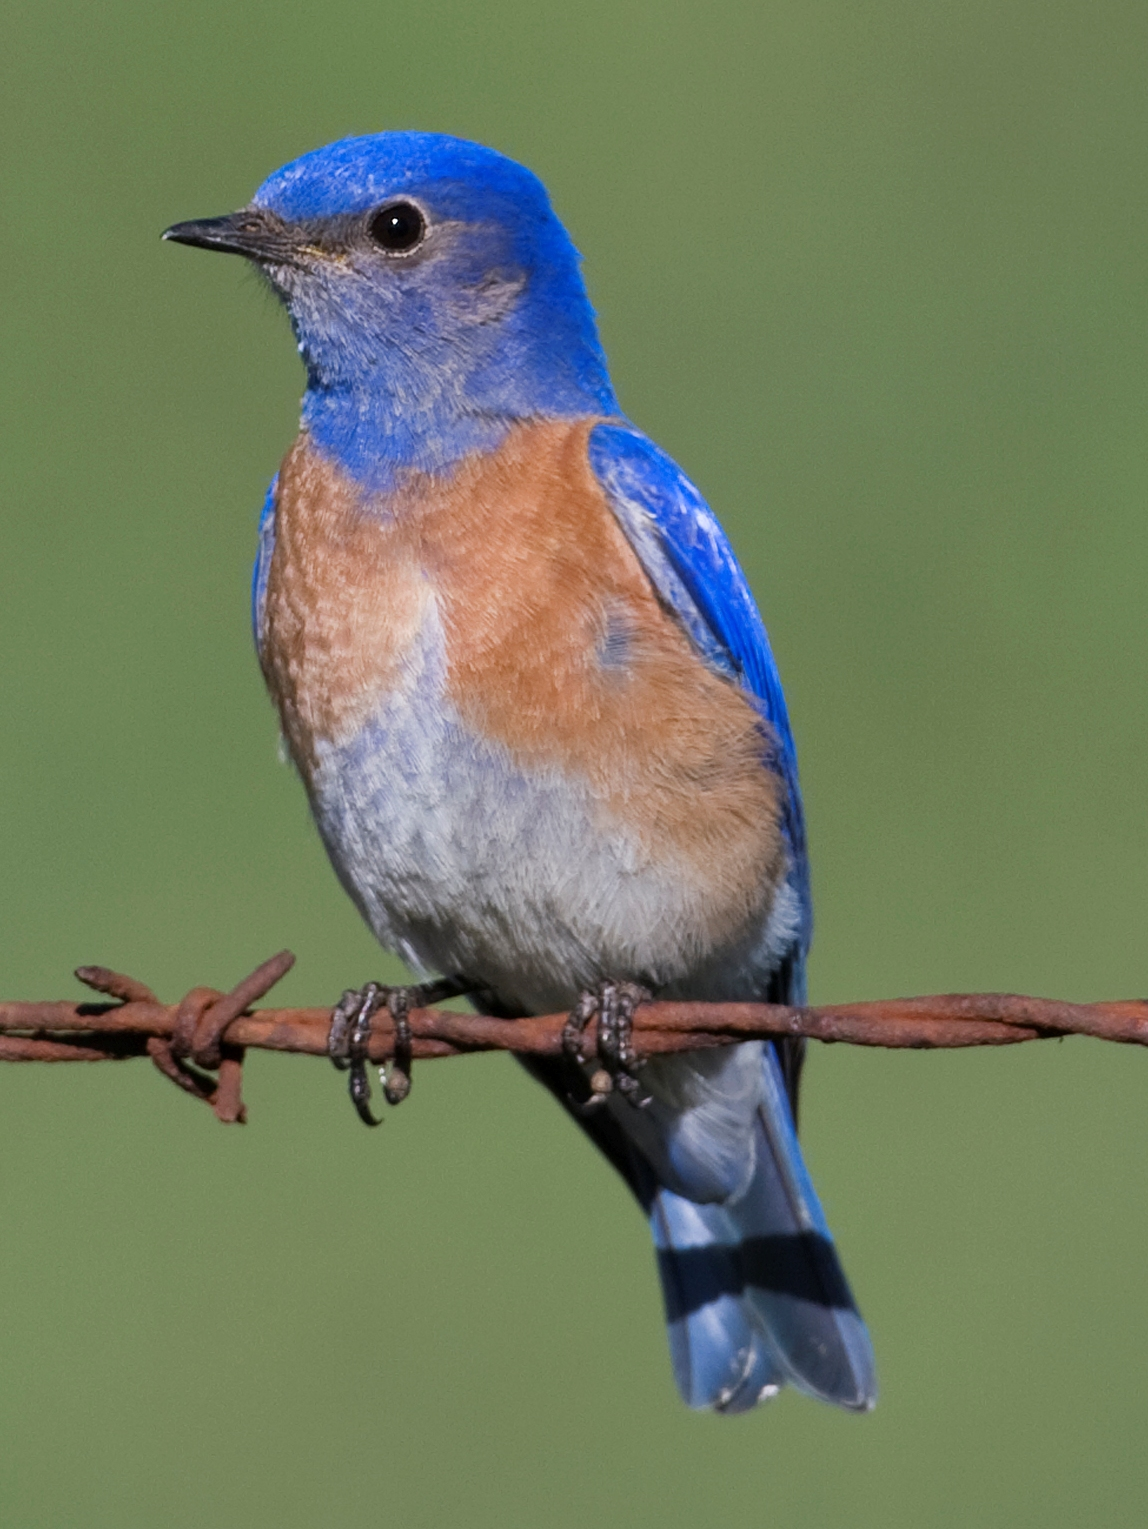 Blue bird - photo#7